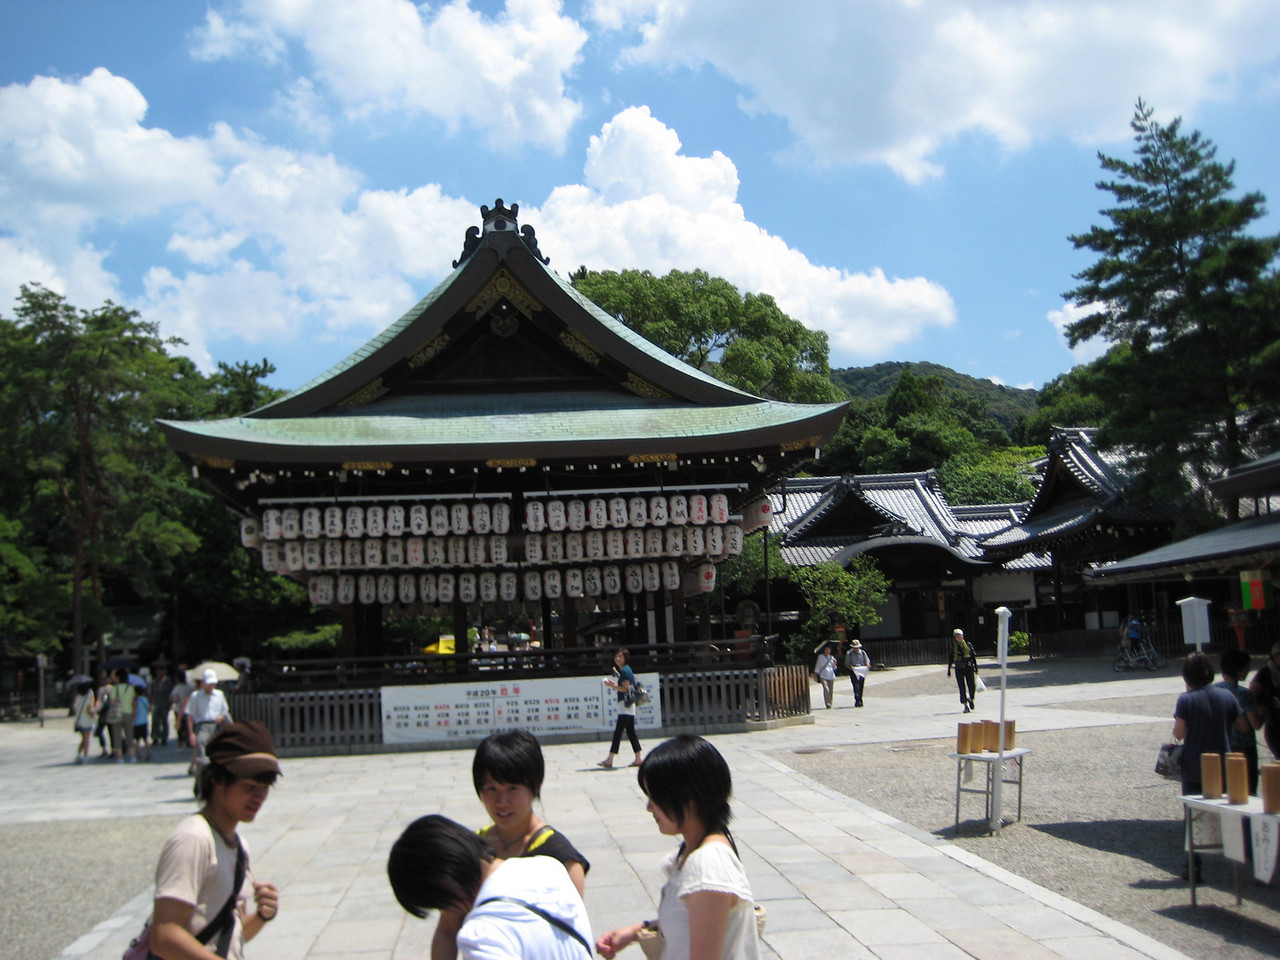 We reach the center of the Yasaka Shrine